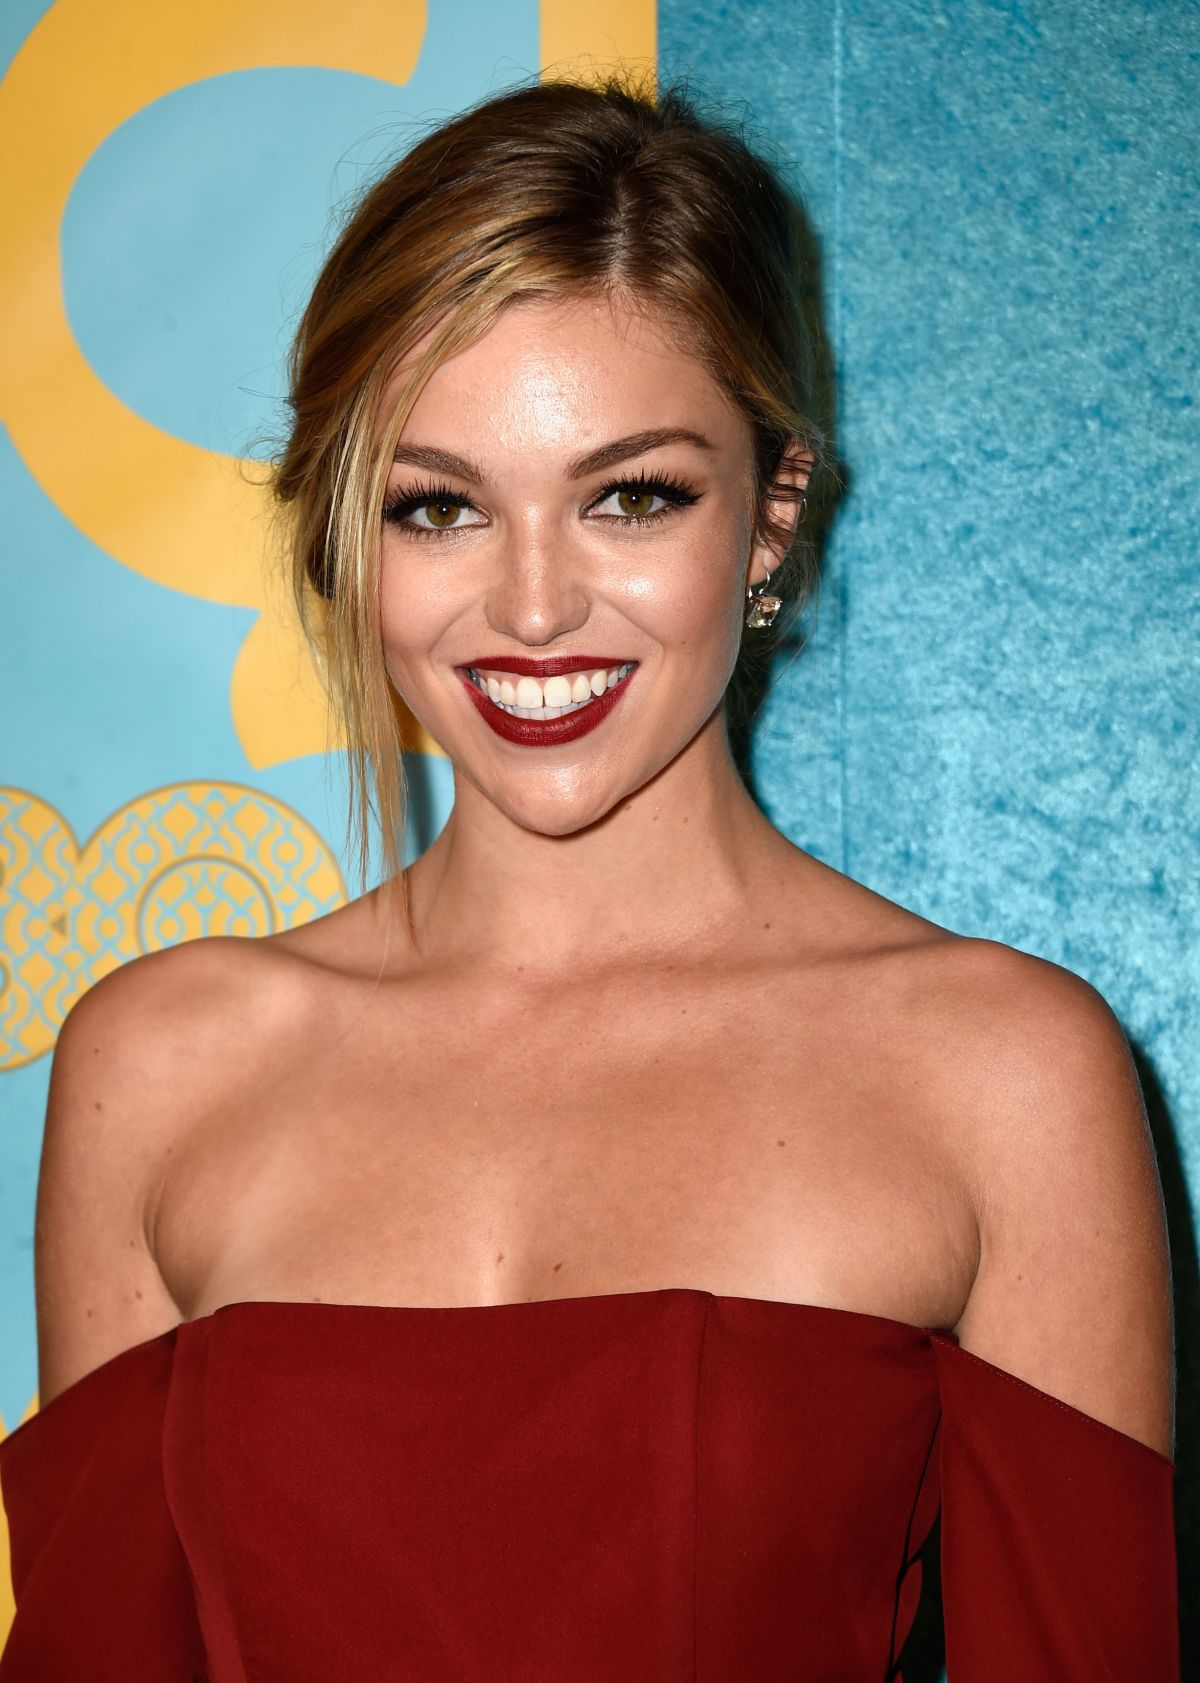 Lili Simmons Archives - HawtCelebs - HawtCelebs: http://www.hawtcelebs.com/category/lili-simmons/